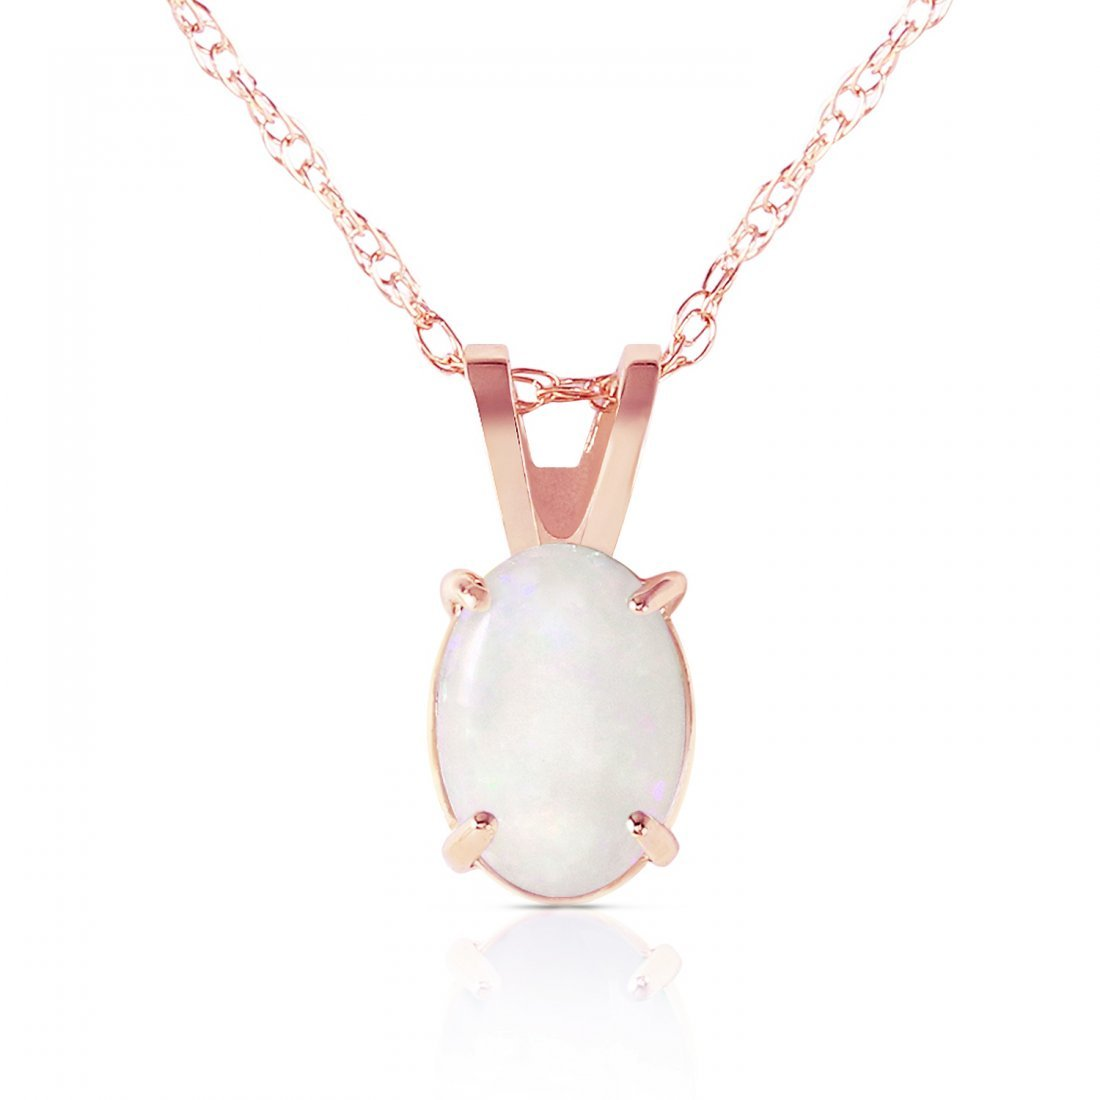 Genuine 0.45 ctw Opal Necklace Jewelry 14KT Rose Gold -